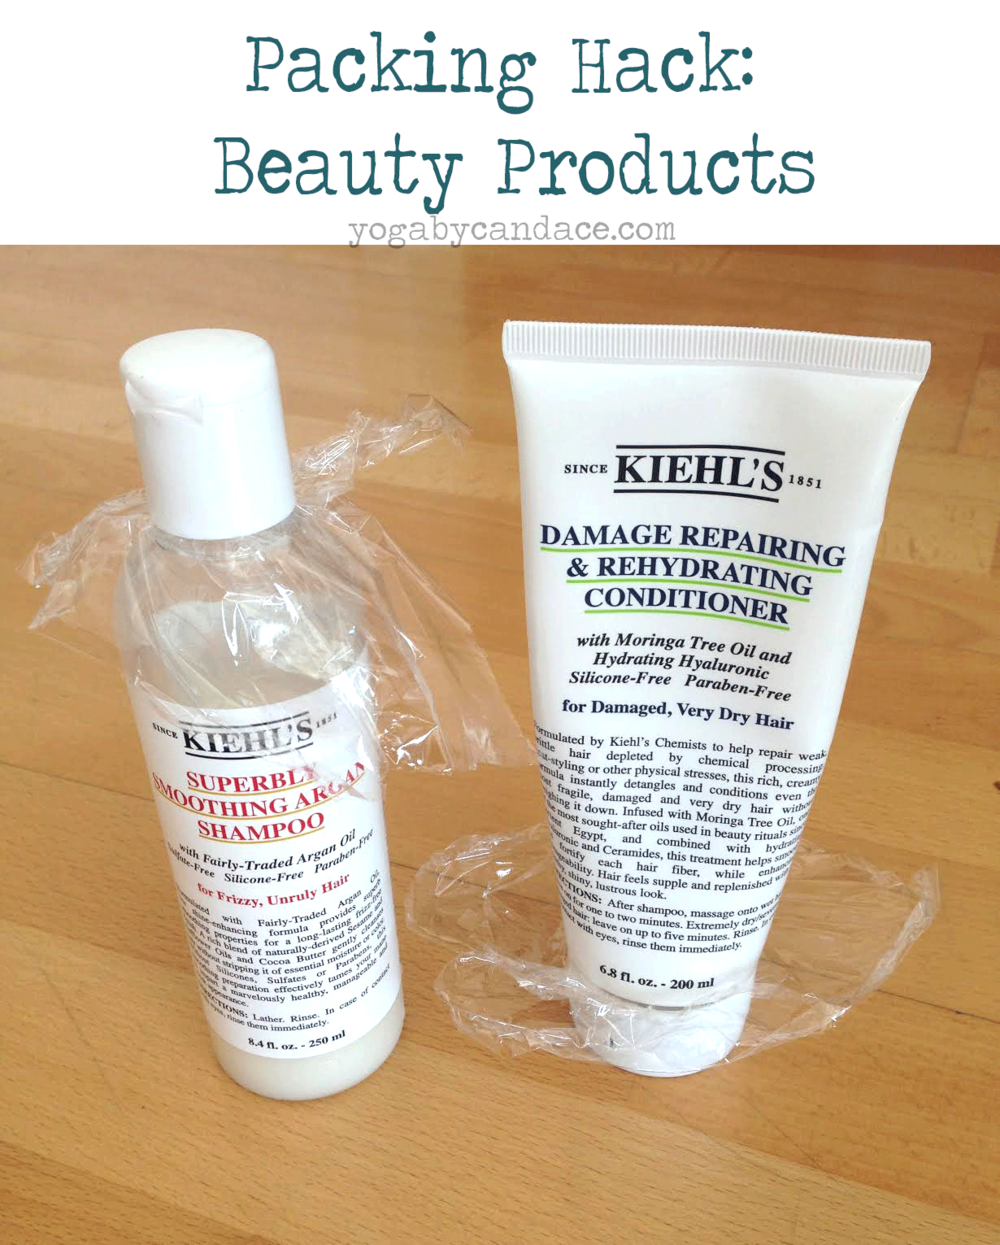 Packing tips for your beauty products Using: Kiehl's shampoo, Kiehl's conditioner